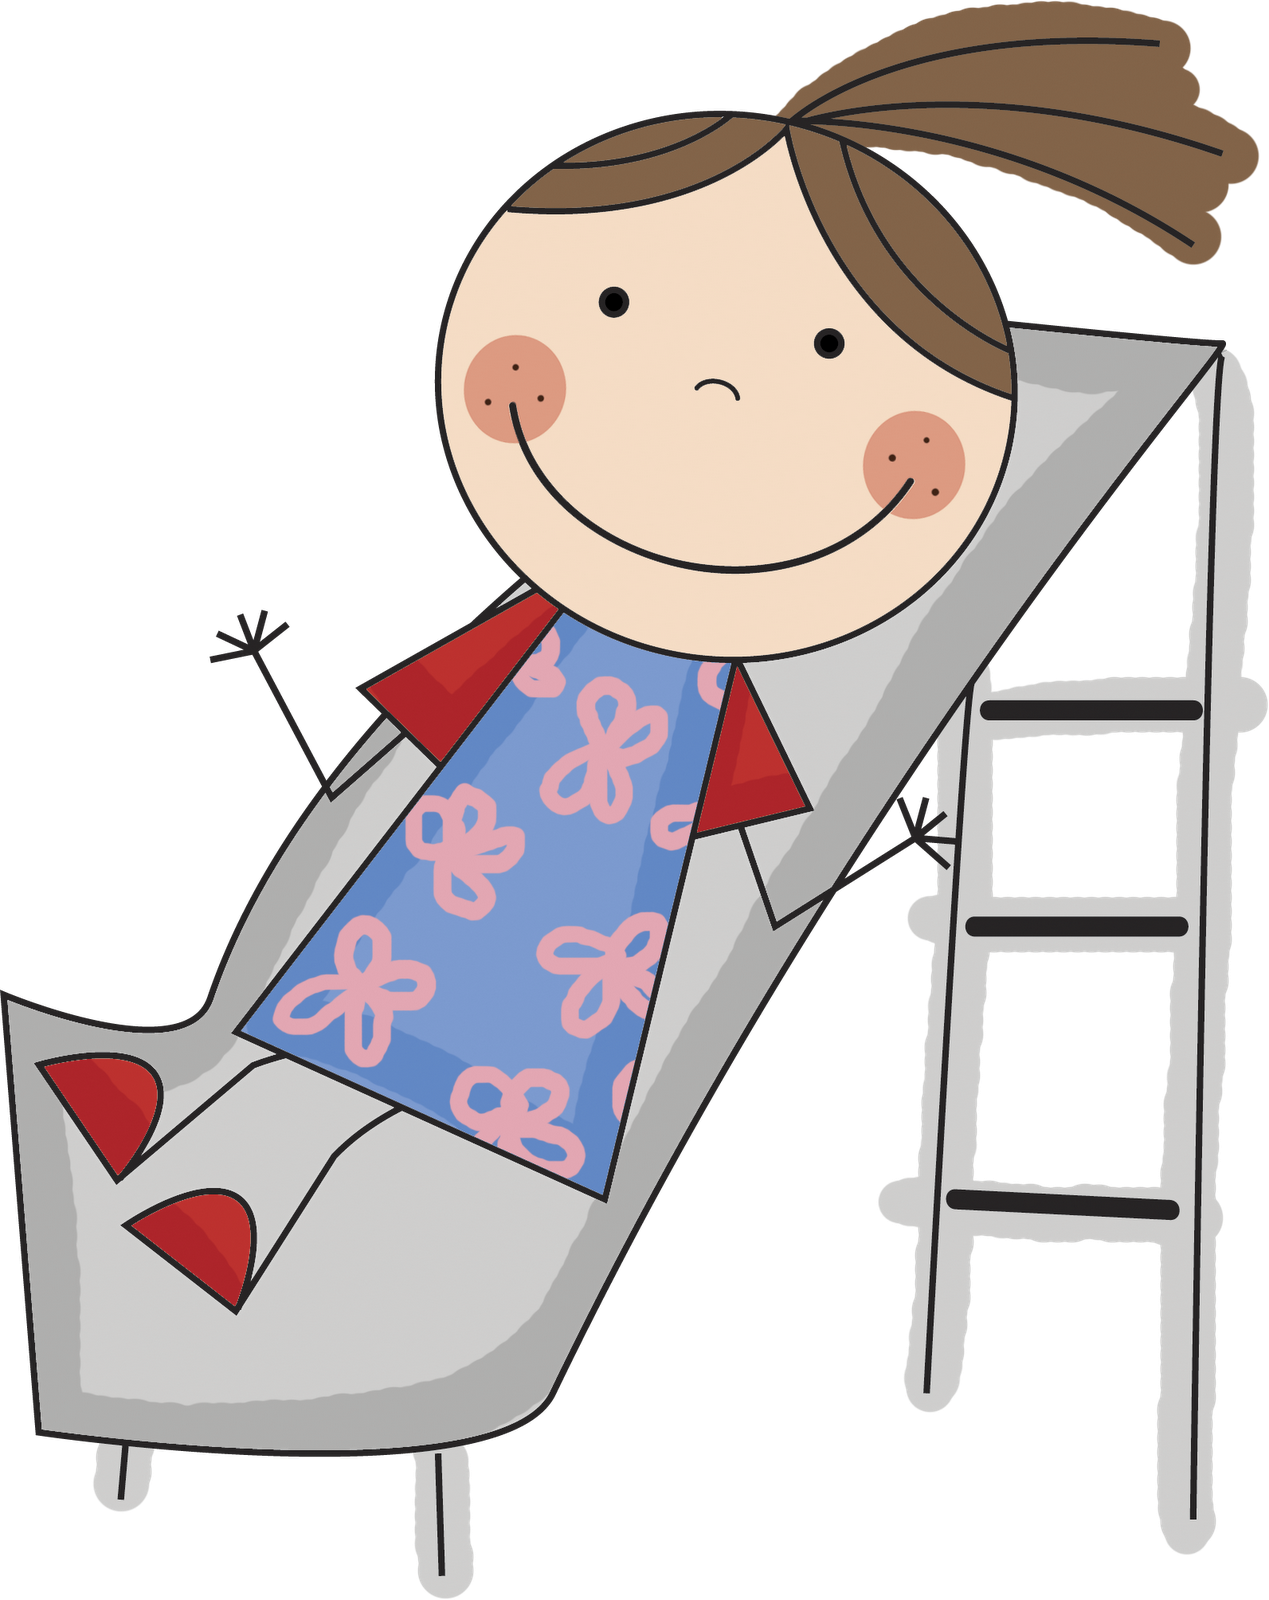 Ladder clipart corporate person. Odds and ends from